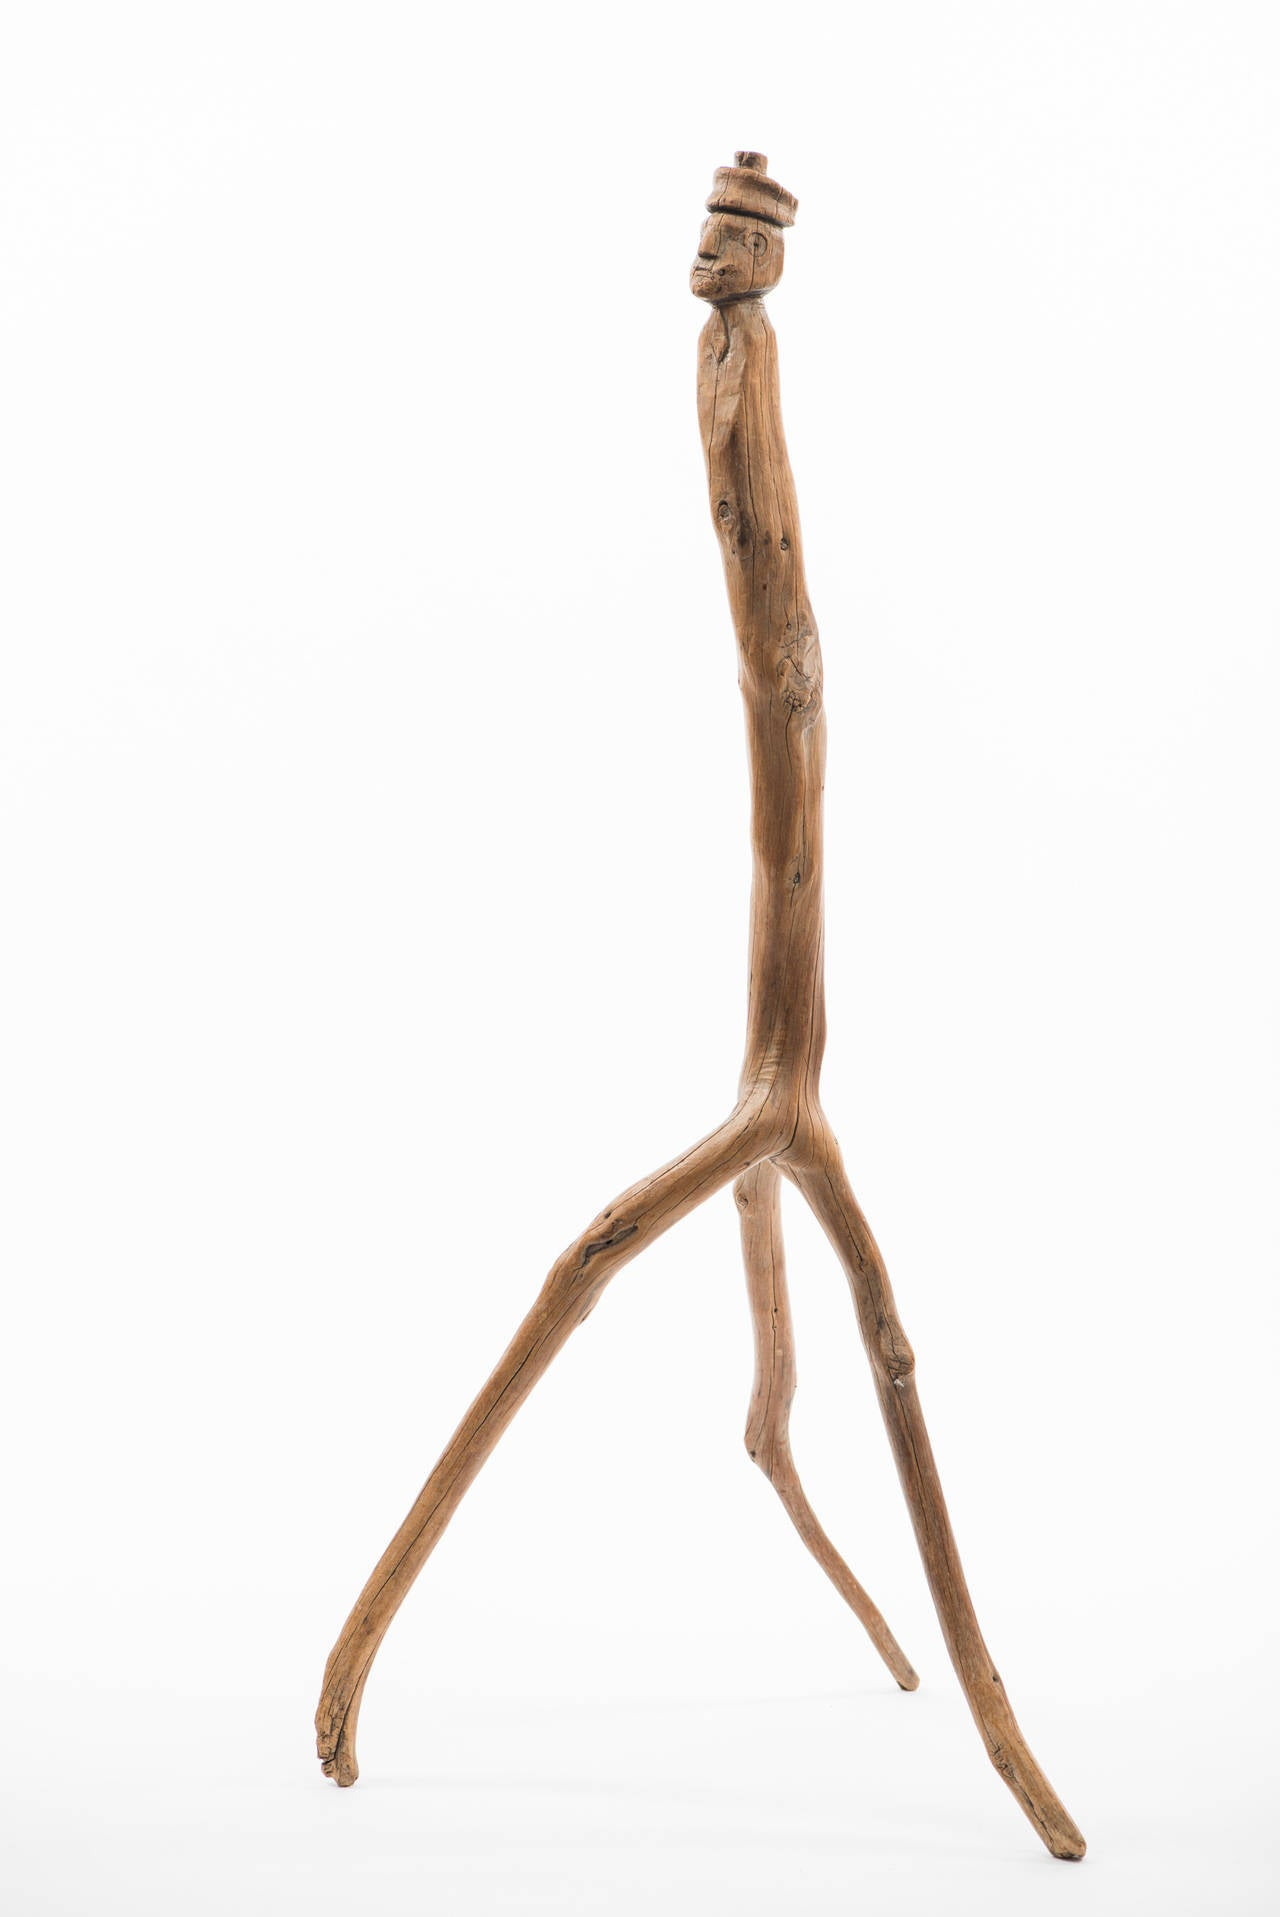 """Carved Folk Figure Cane with Branch Legs  Region: American - Southwest?  Circa: Early 20th Century  Material: Native branch form with carved trunk  Dimension: Approximately 38""""  Condition: Excellent. No restoration  Collection"""